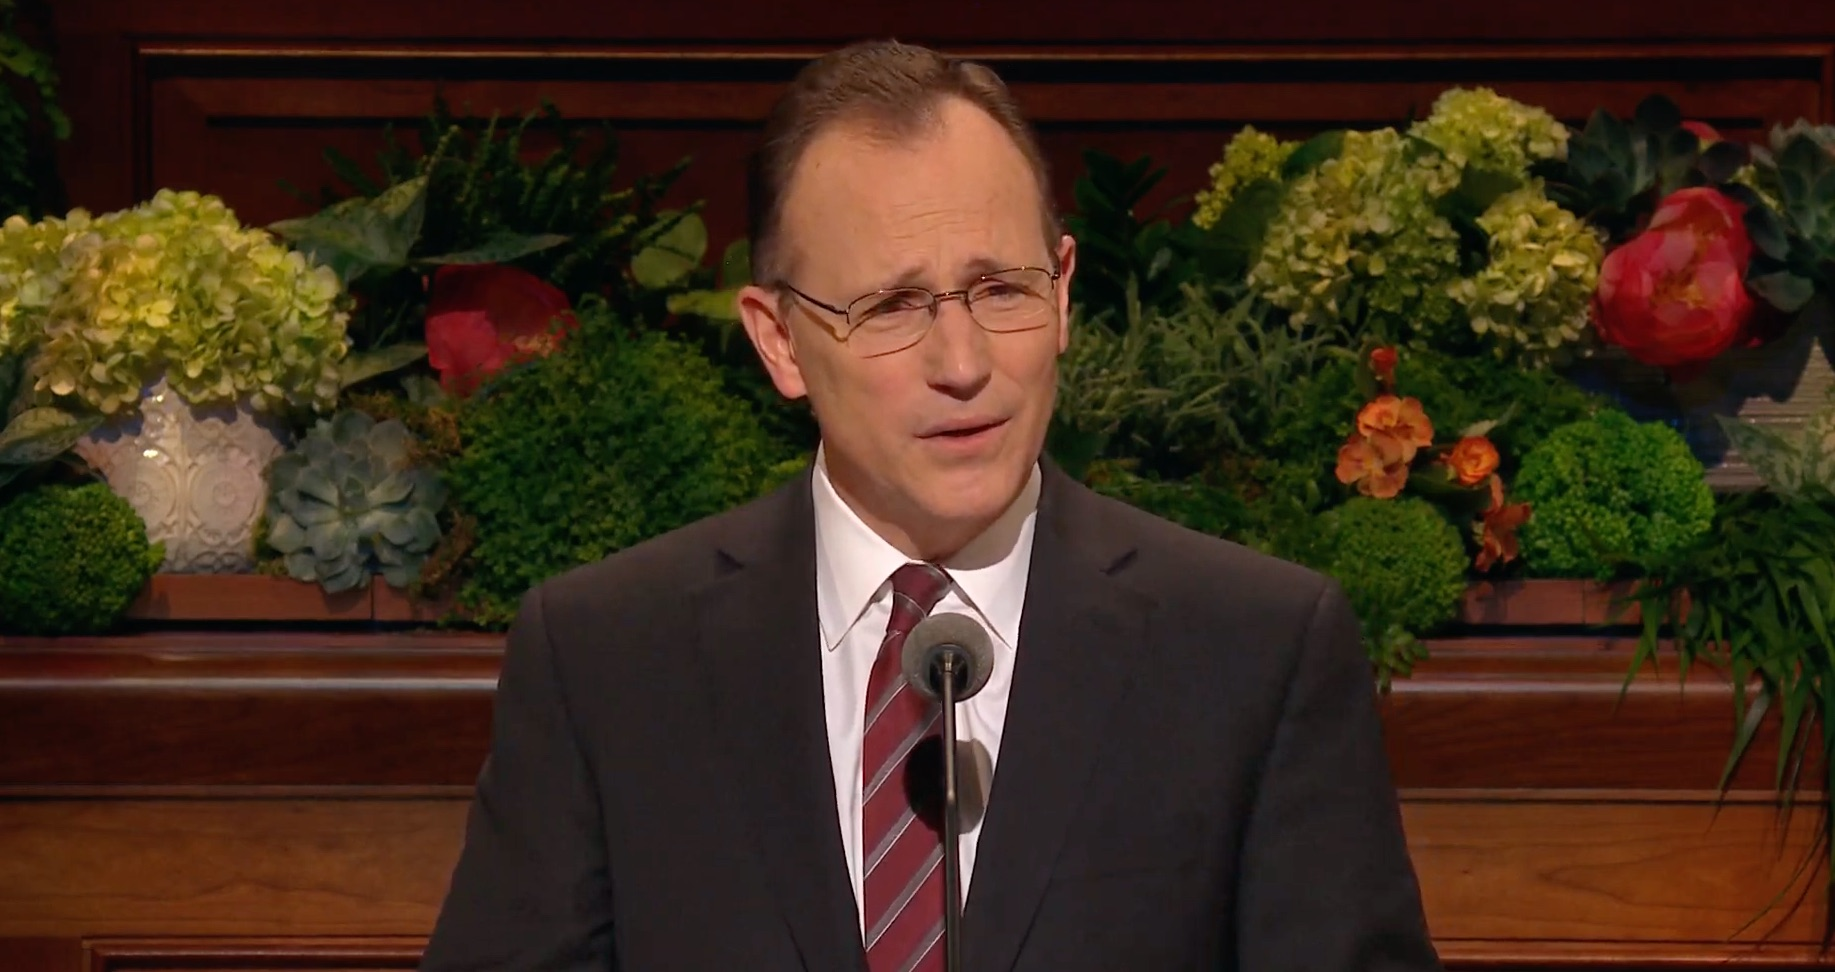 Elder Kyle S. McKay, a General Authority Seventy, gives his address during the Sunday afternoon session of the 189th Annual General Conference on April 7, 2019.